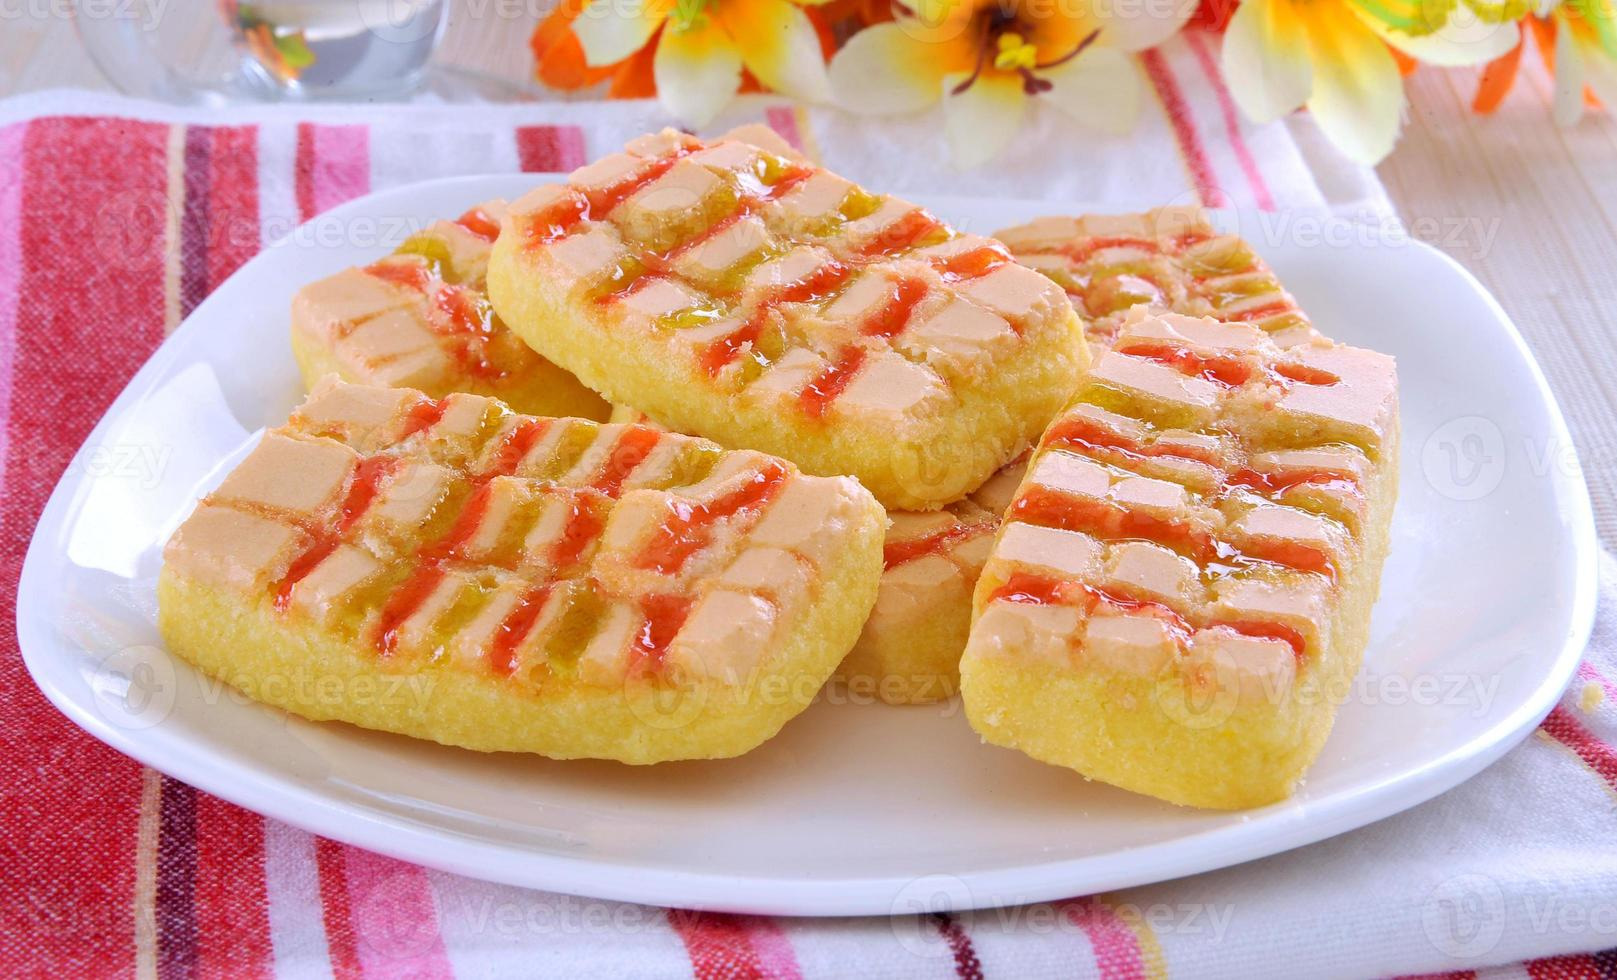 tuitti fruitti biscuits-6 photo